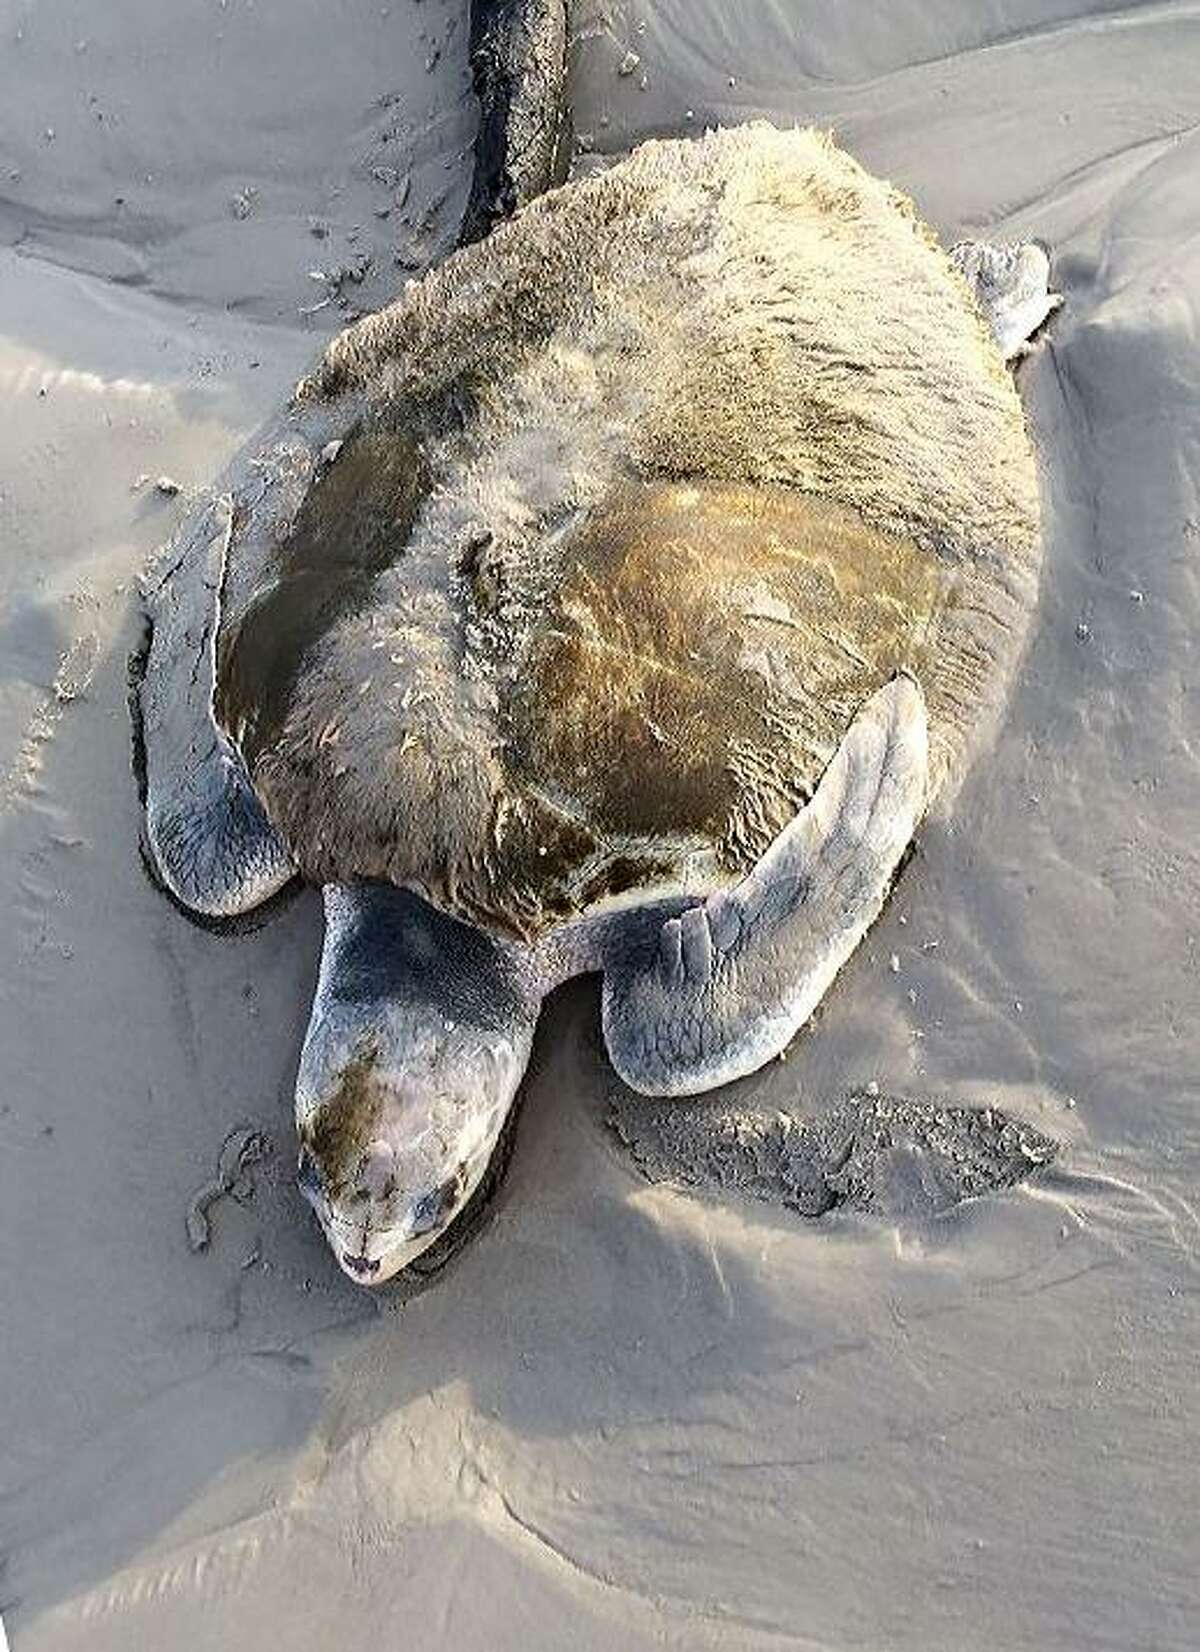 A sick sea turtle was stranded on the west side of Galveston's beach Oct. 9, 2018, covered in algae and barely conscious. After a NOAA Fisheries employee picked it up from the beach, the turtle was taken to the Houston Zoo for an exam and medical treatment. The turtle is now recovering at the National Oceanic and Atmospheric Administration's Galveston facility.